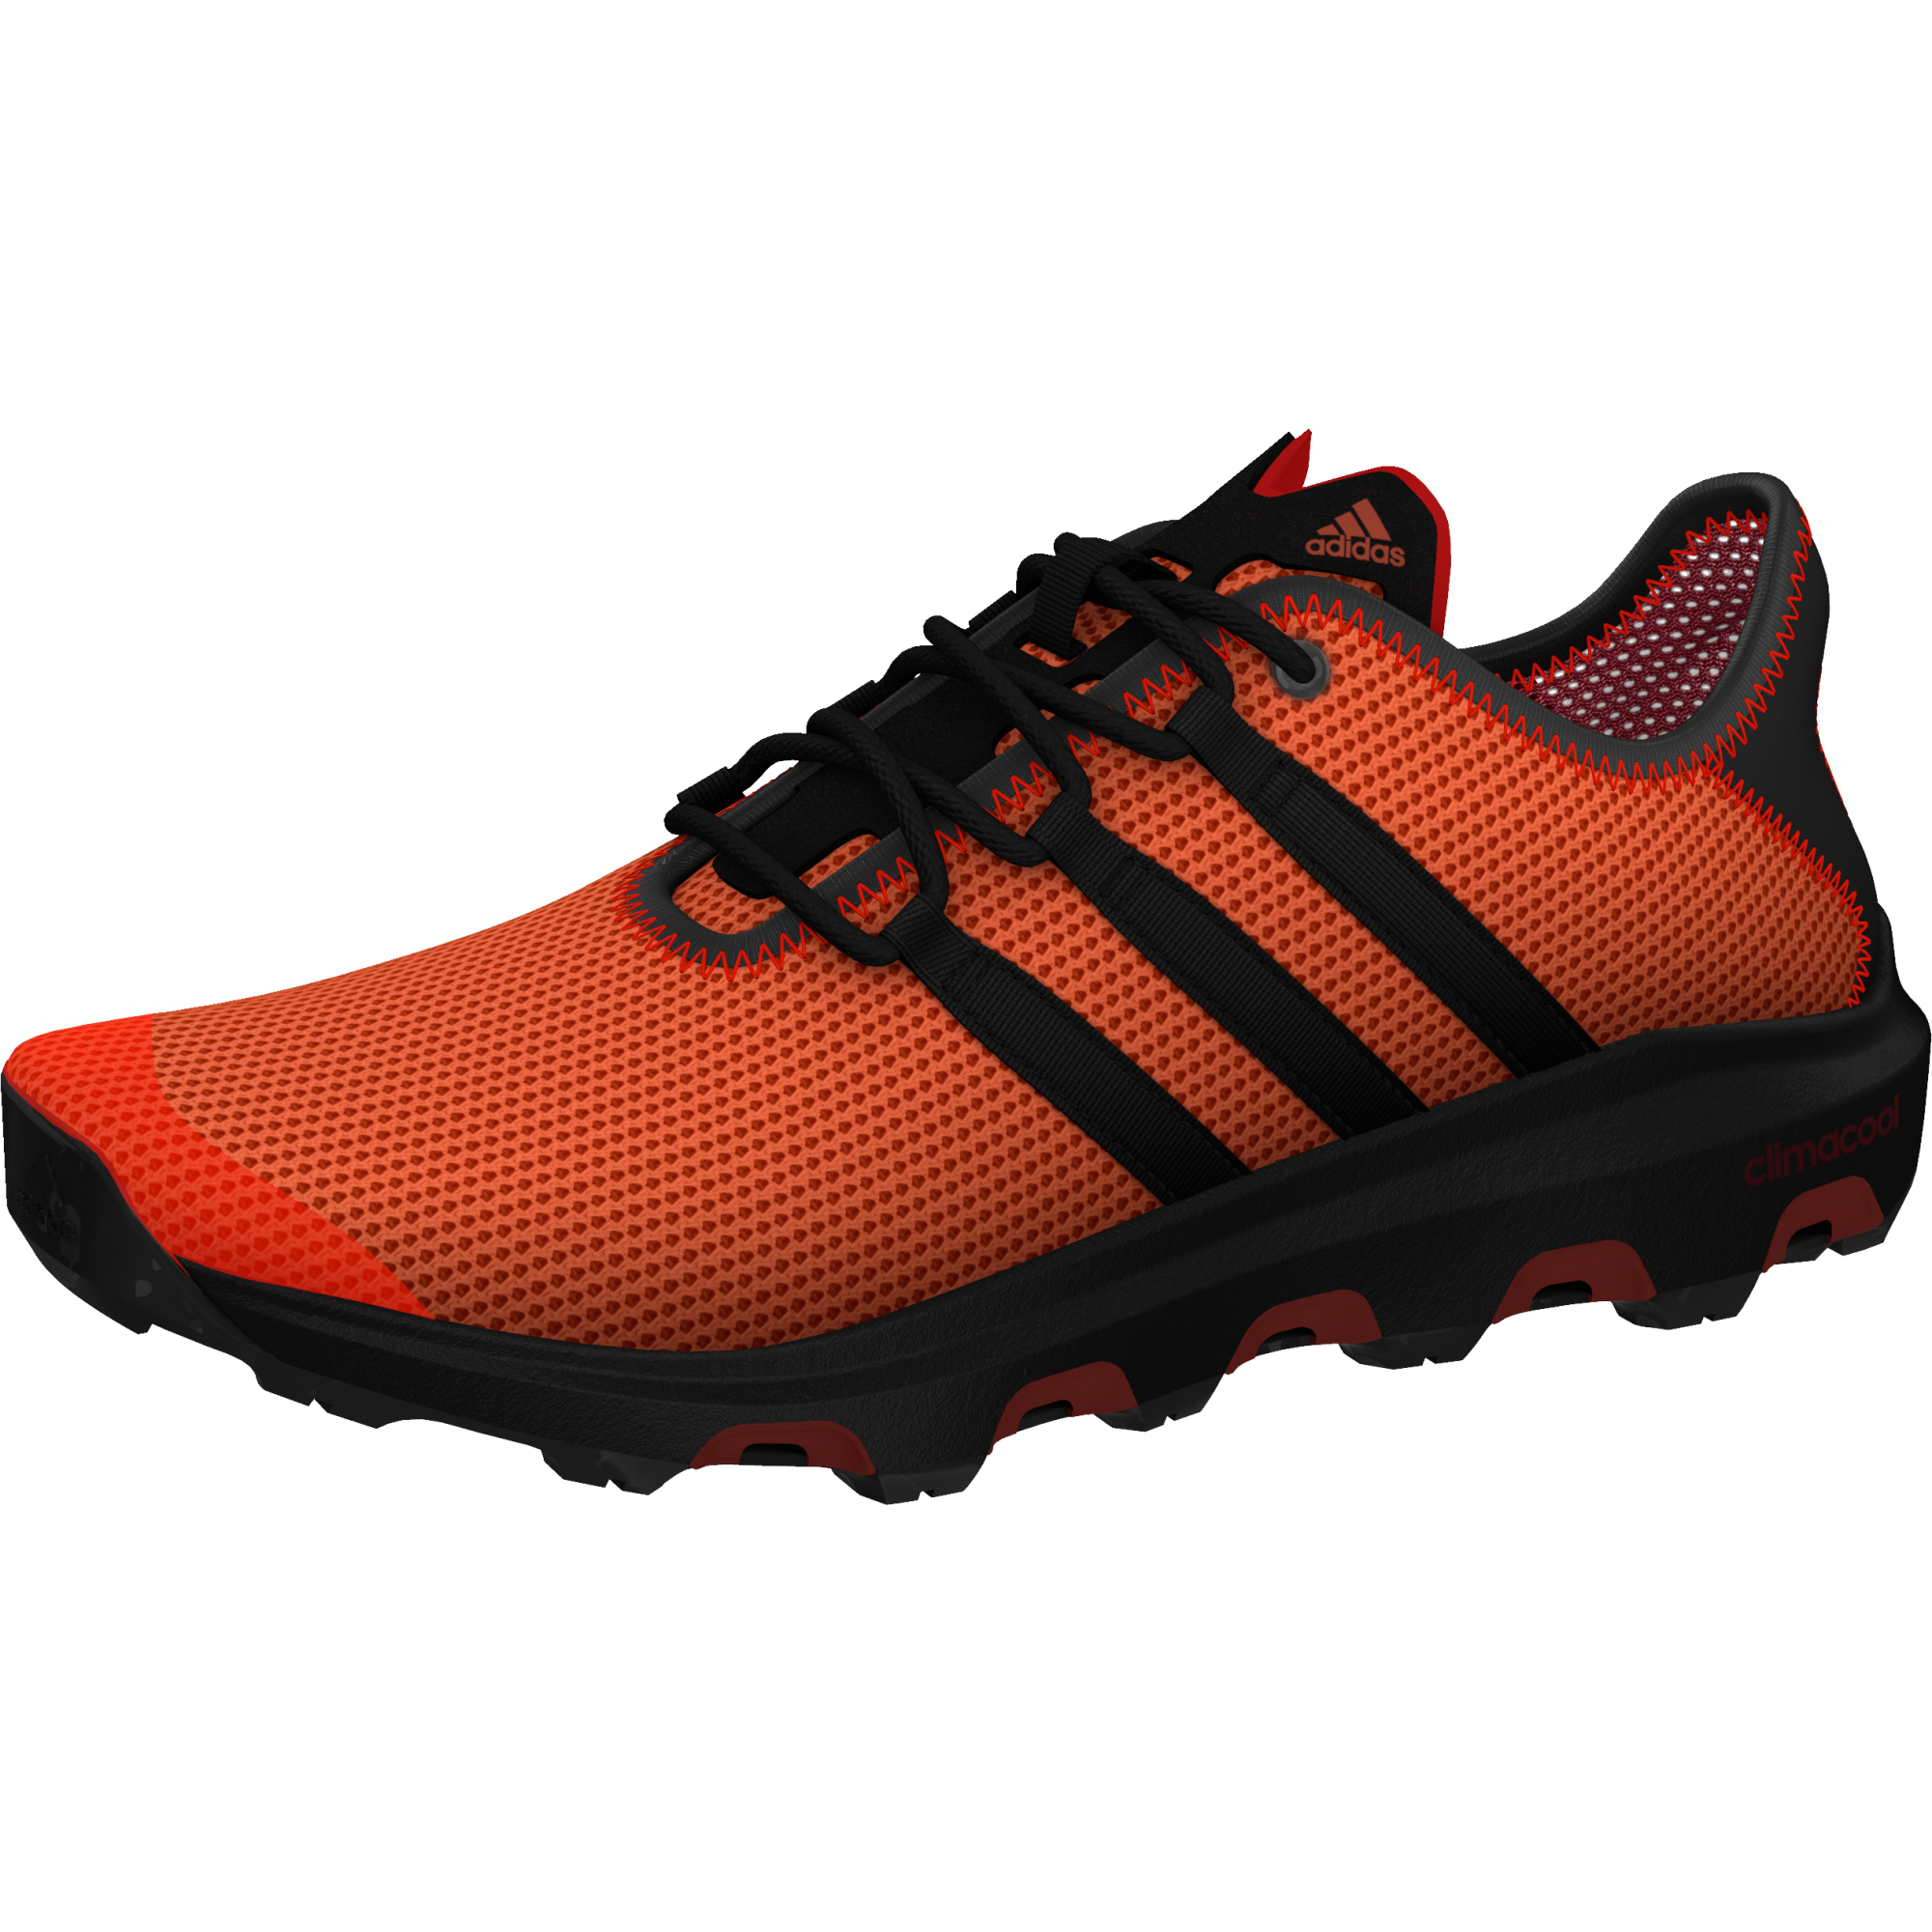 Adidas Climacool Voyager - S78563